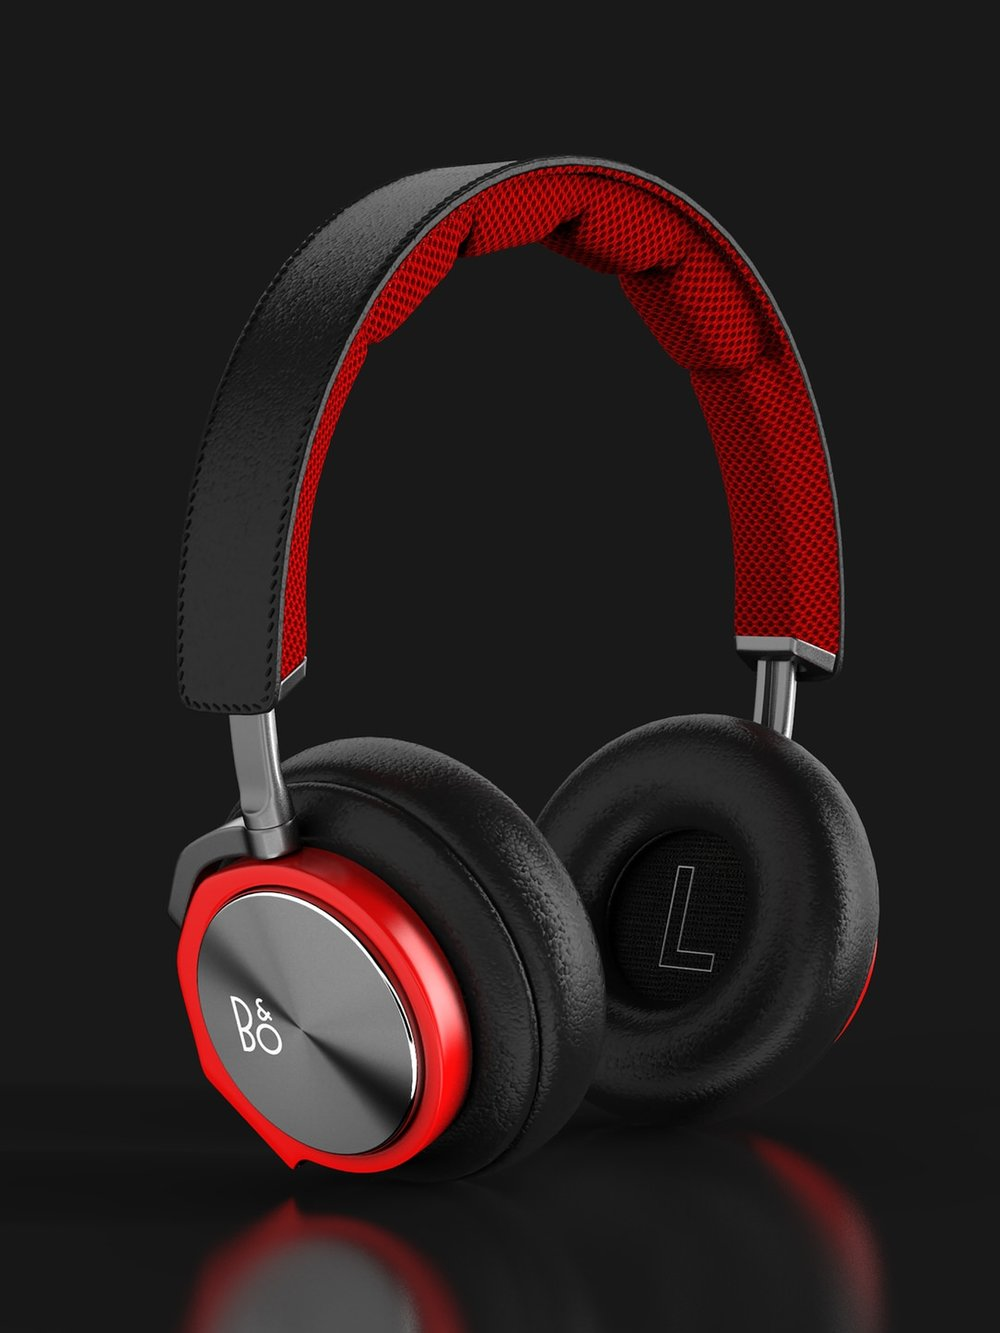 Product photography of red Beoplay Headphones